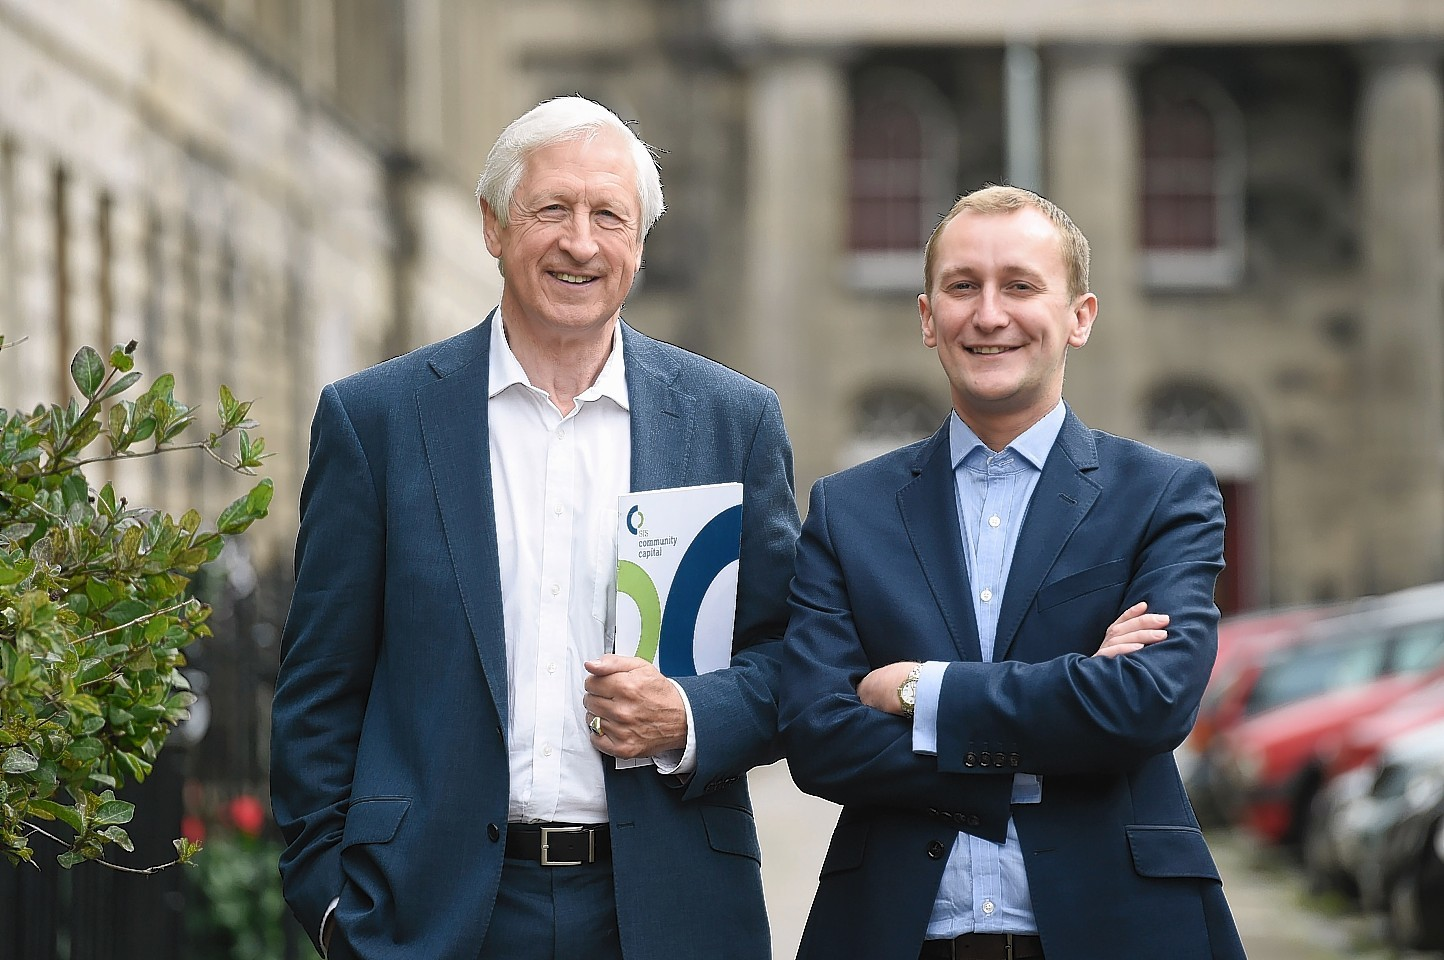 Social Investment Scotland Chairman Nick Kuenssberg and Chief Executive Alastair Davis